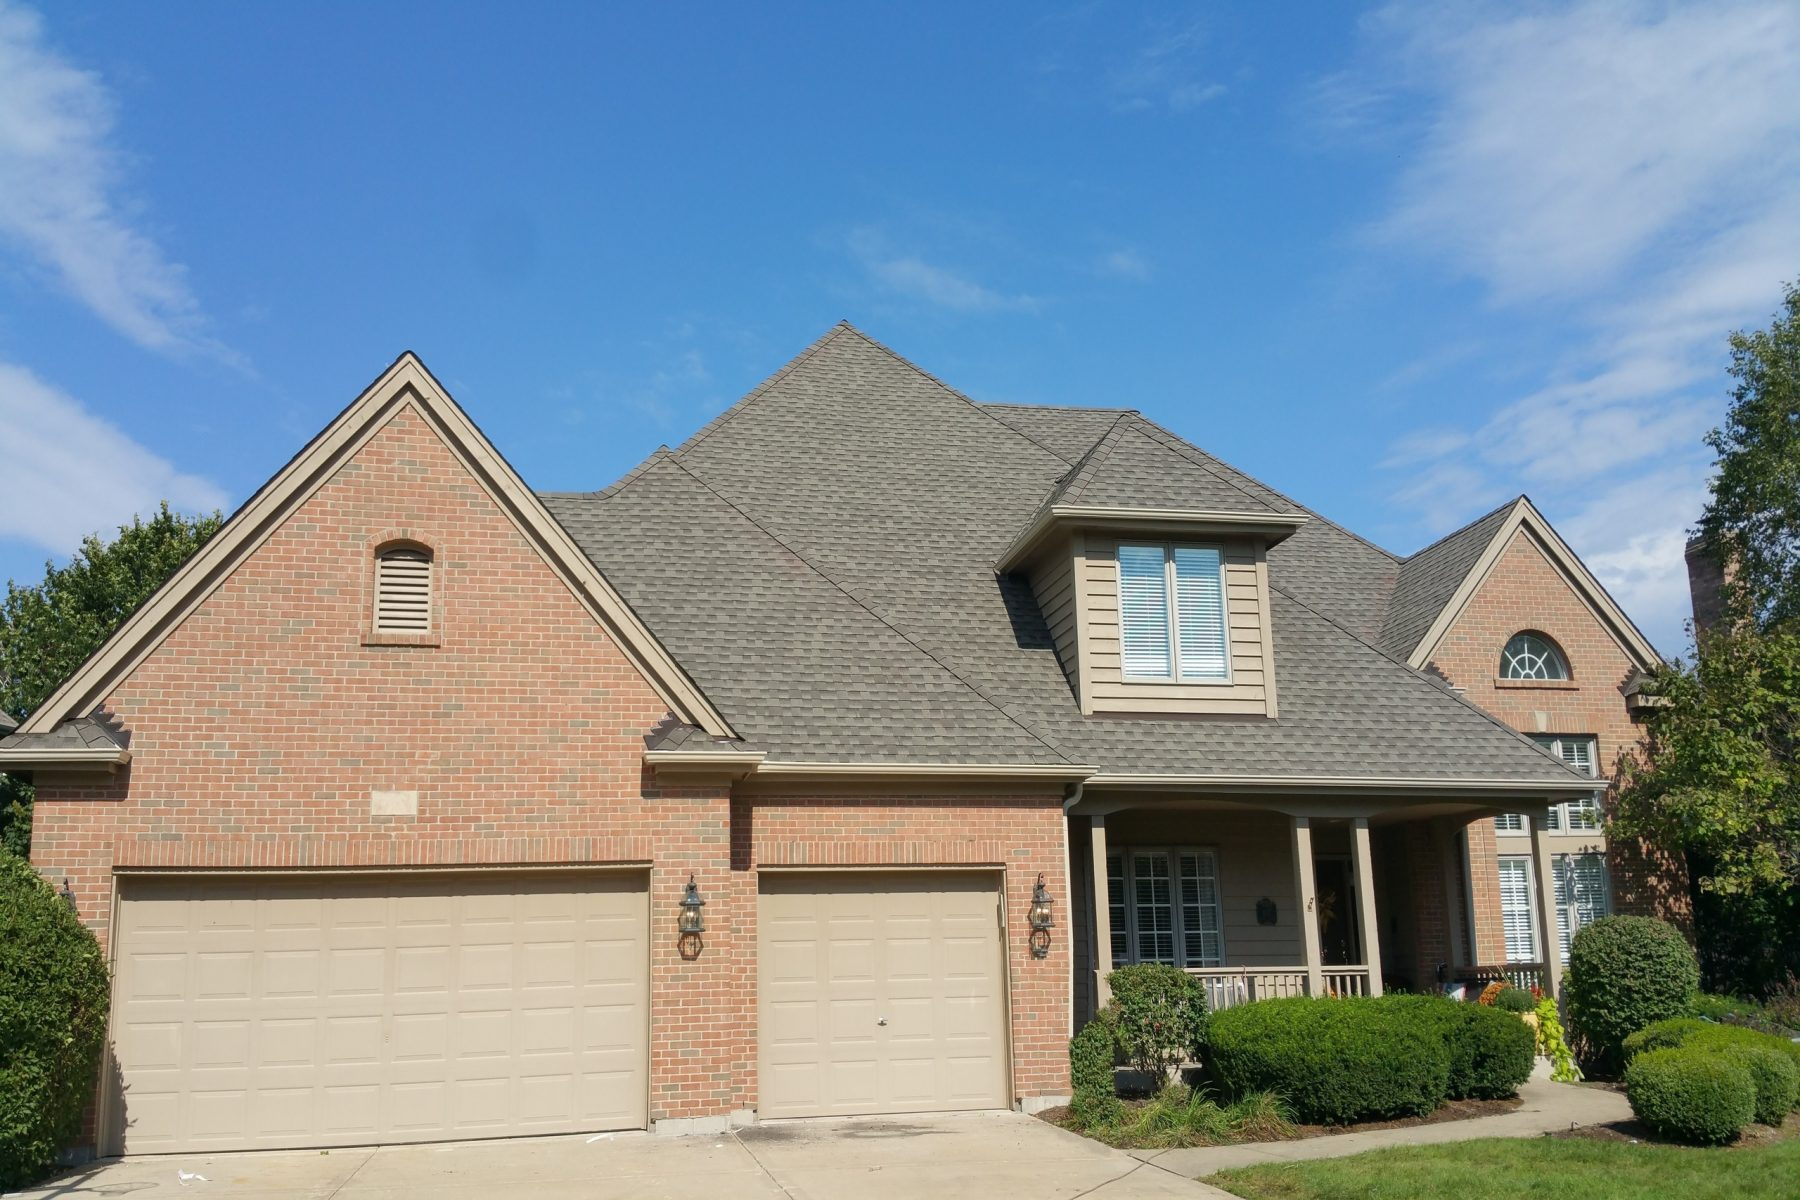 Naperville Roof 1